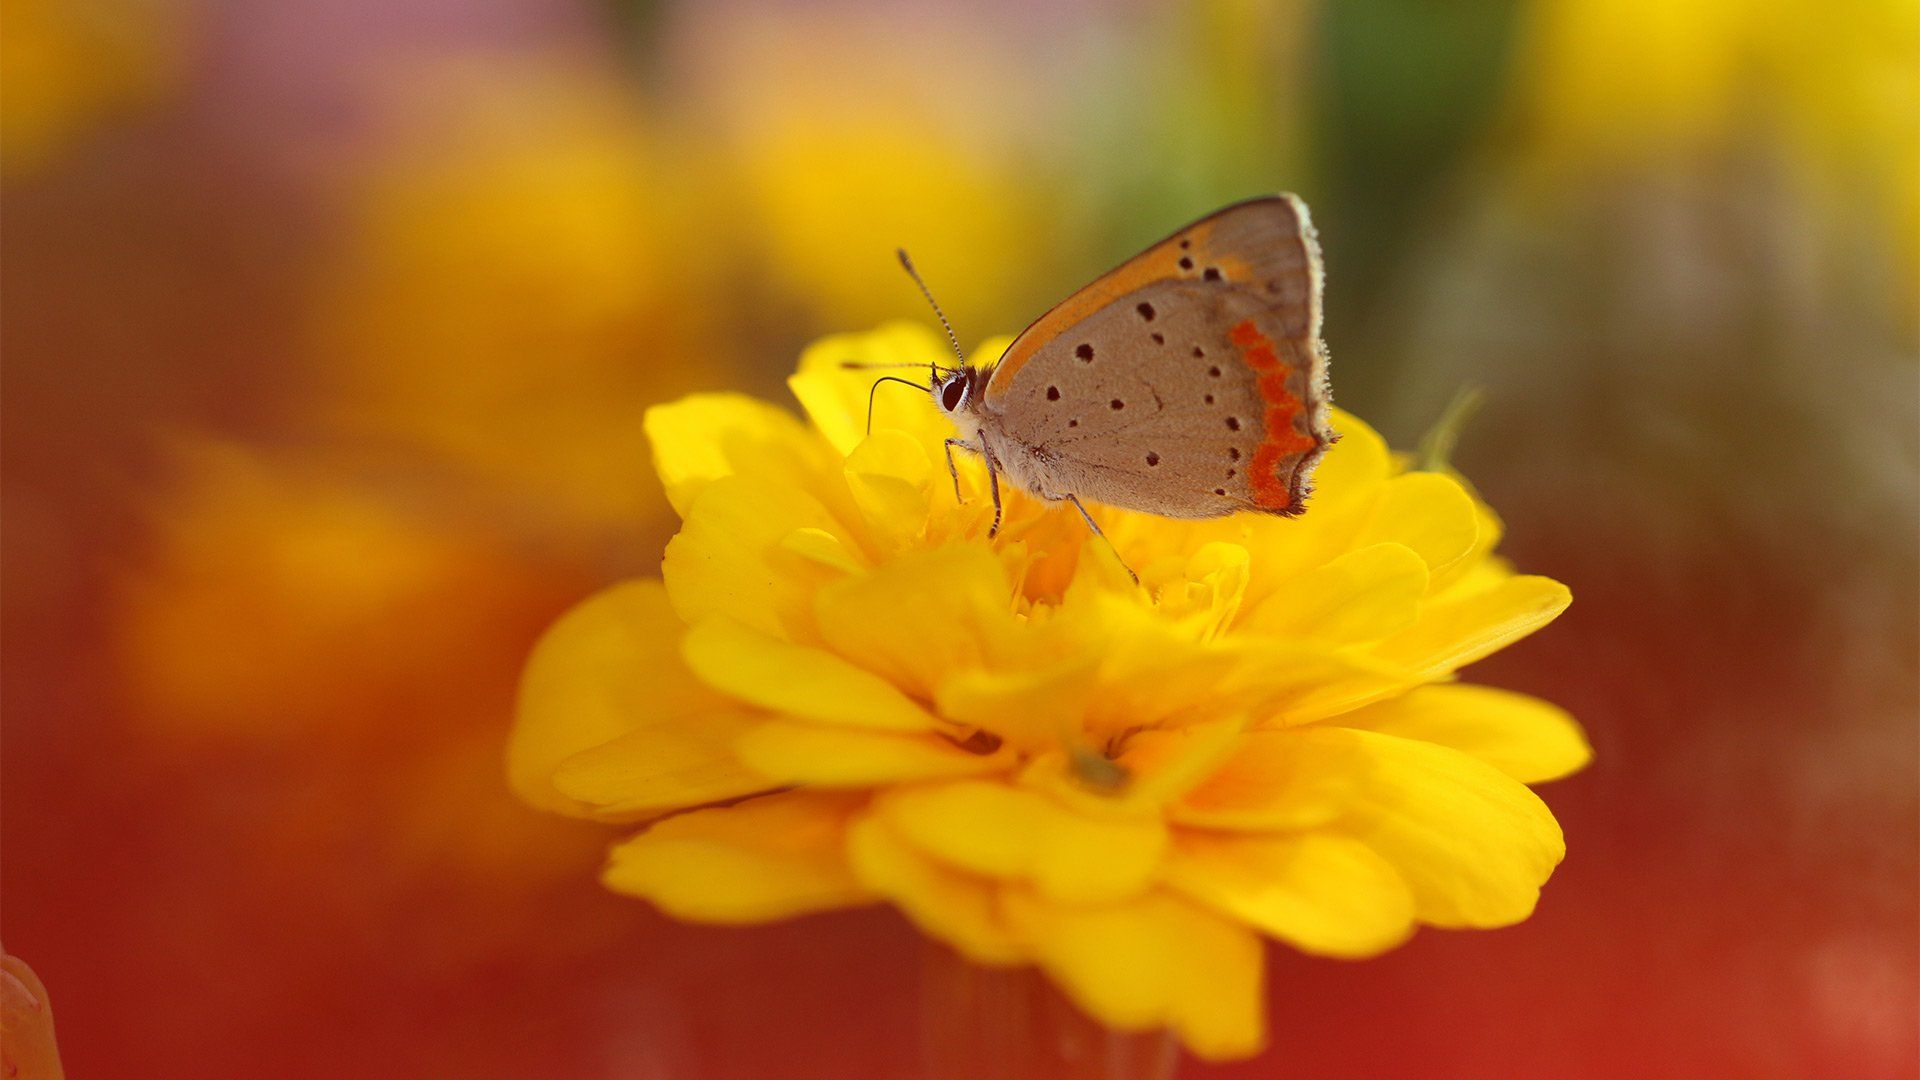 A close-up of a butterfly on a yellow flower, with the background blurred.